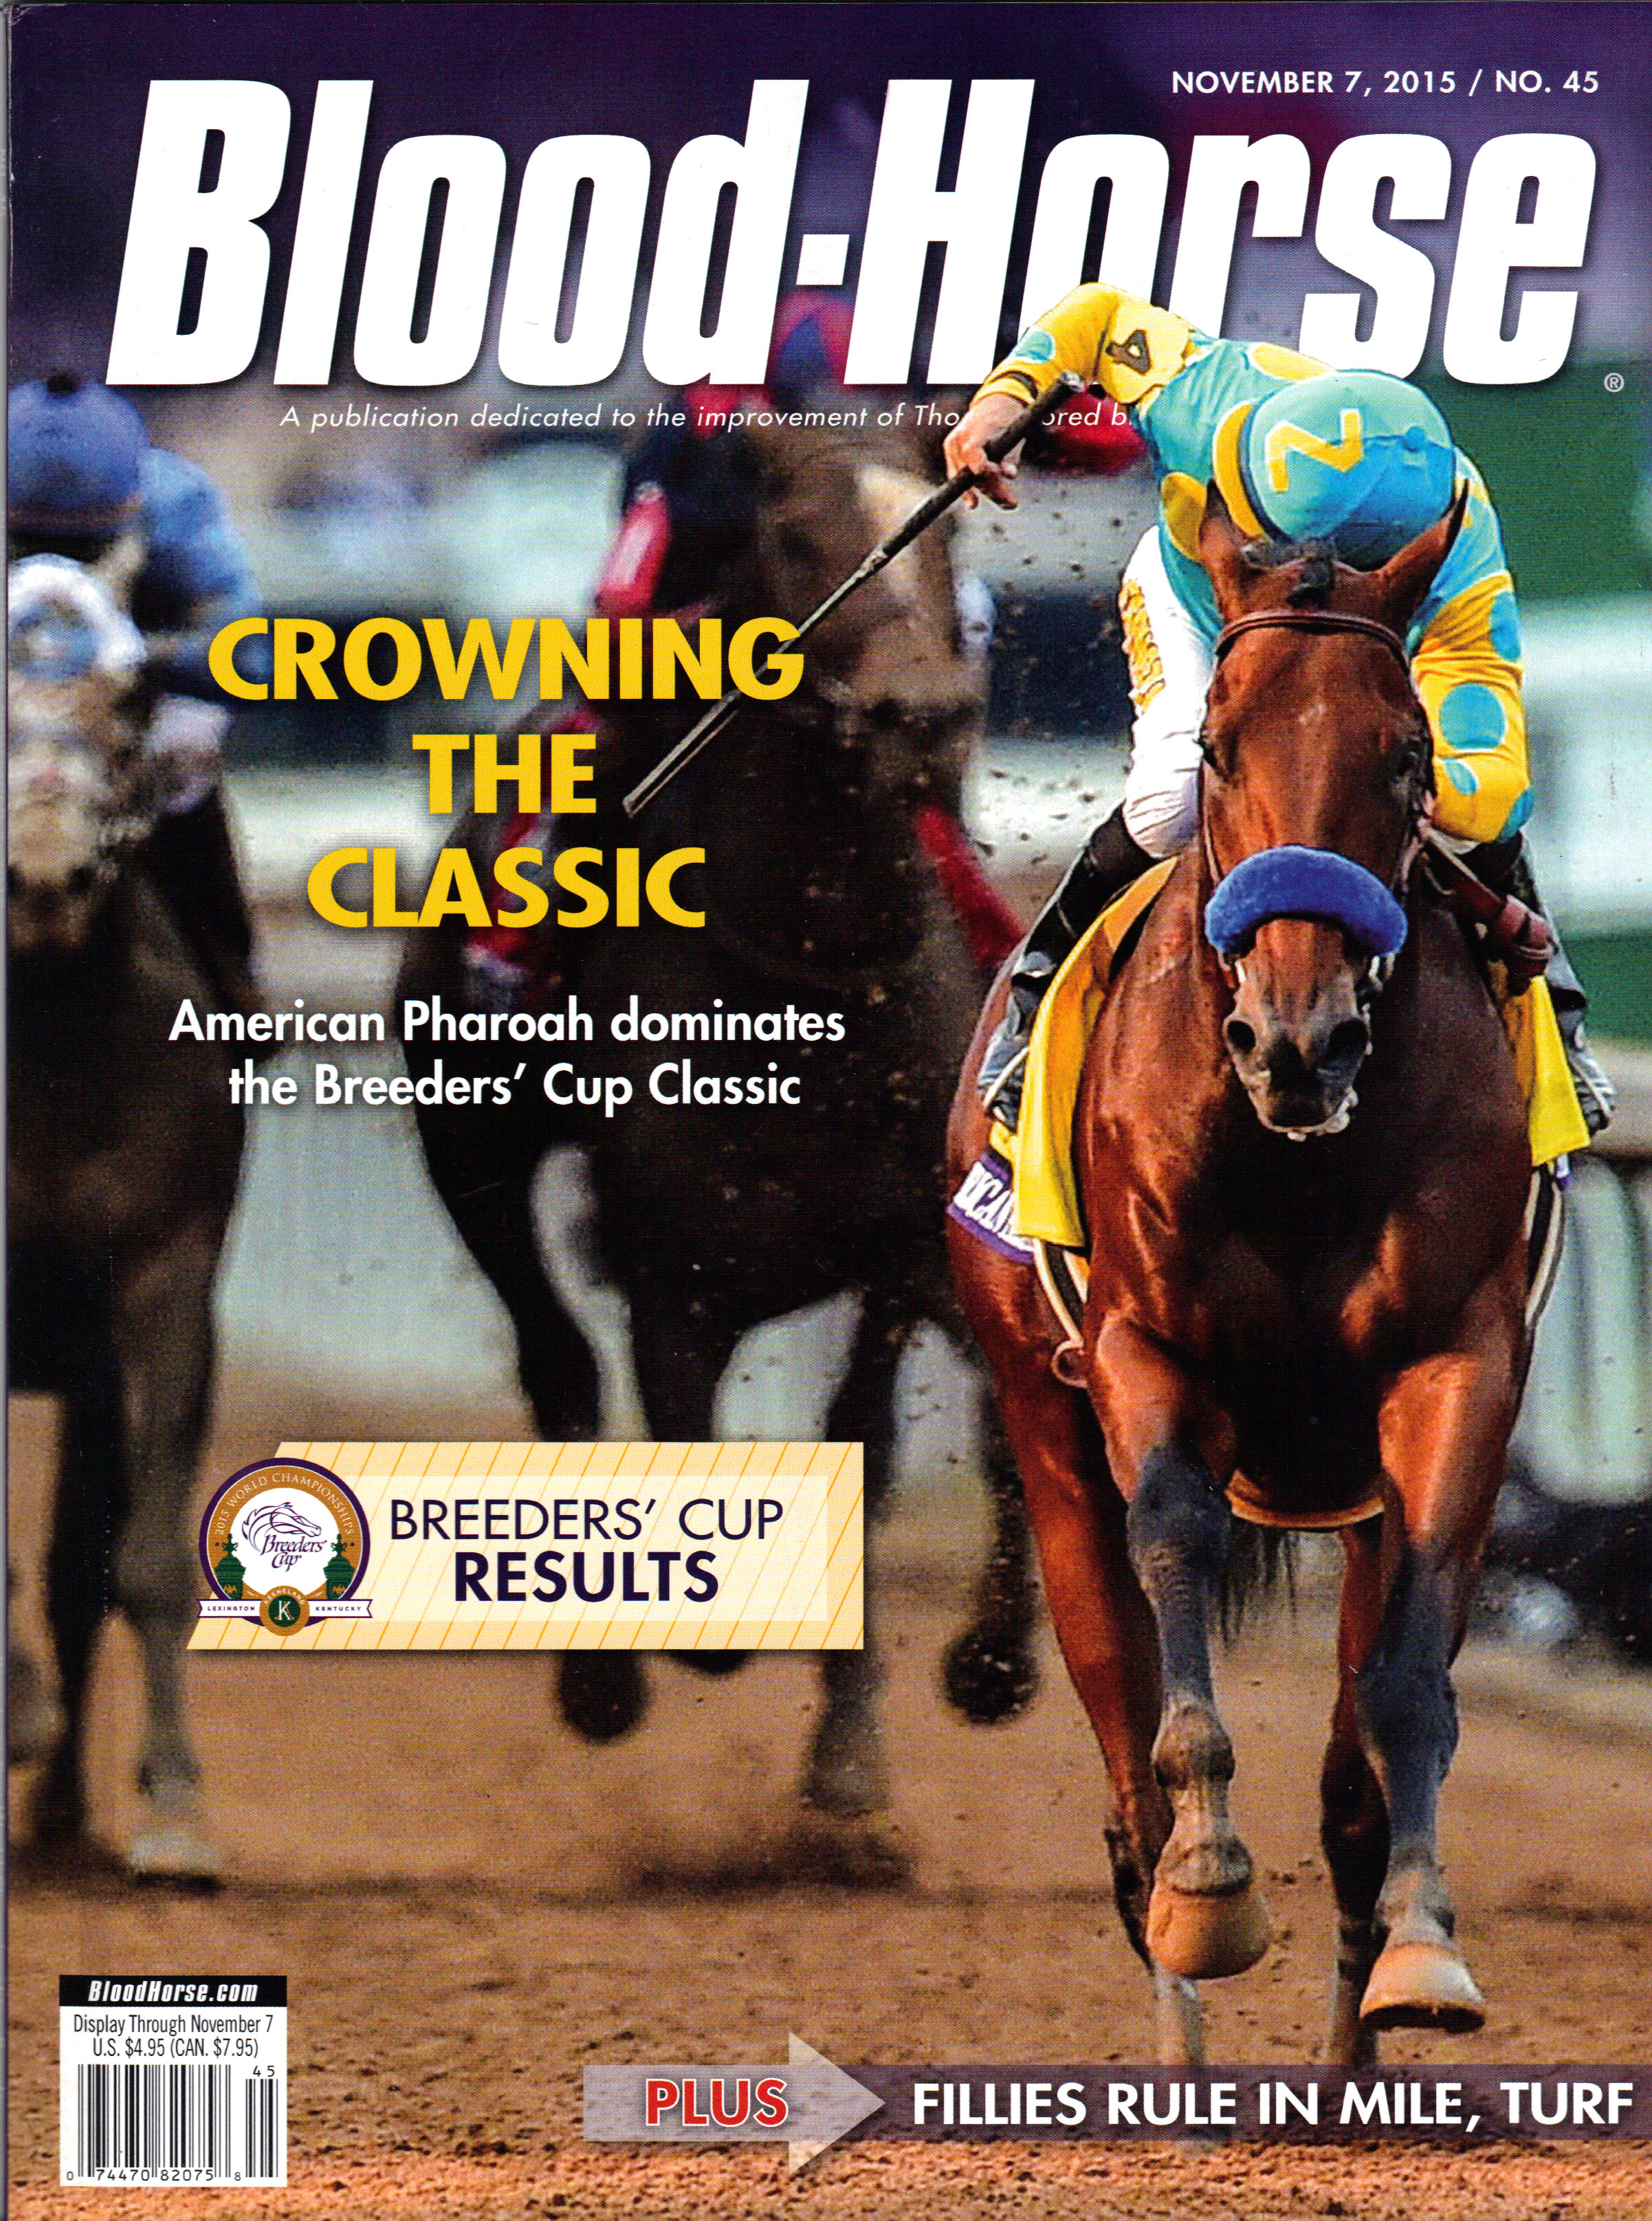 Image for BLOOD-HORSE, NOVEMBER 7, 2015 / NO. 45 ~ CROWNING THE CLASSIC